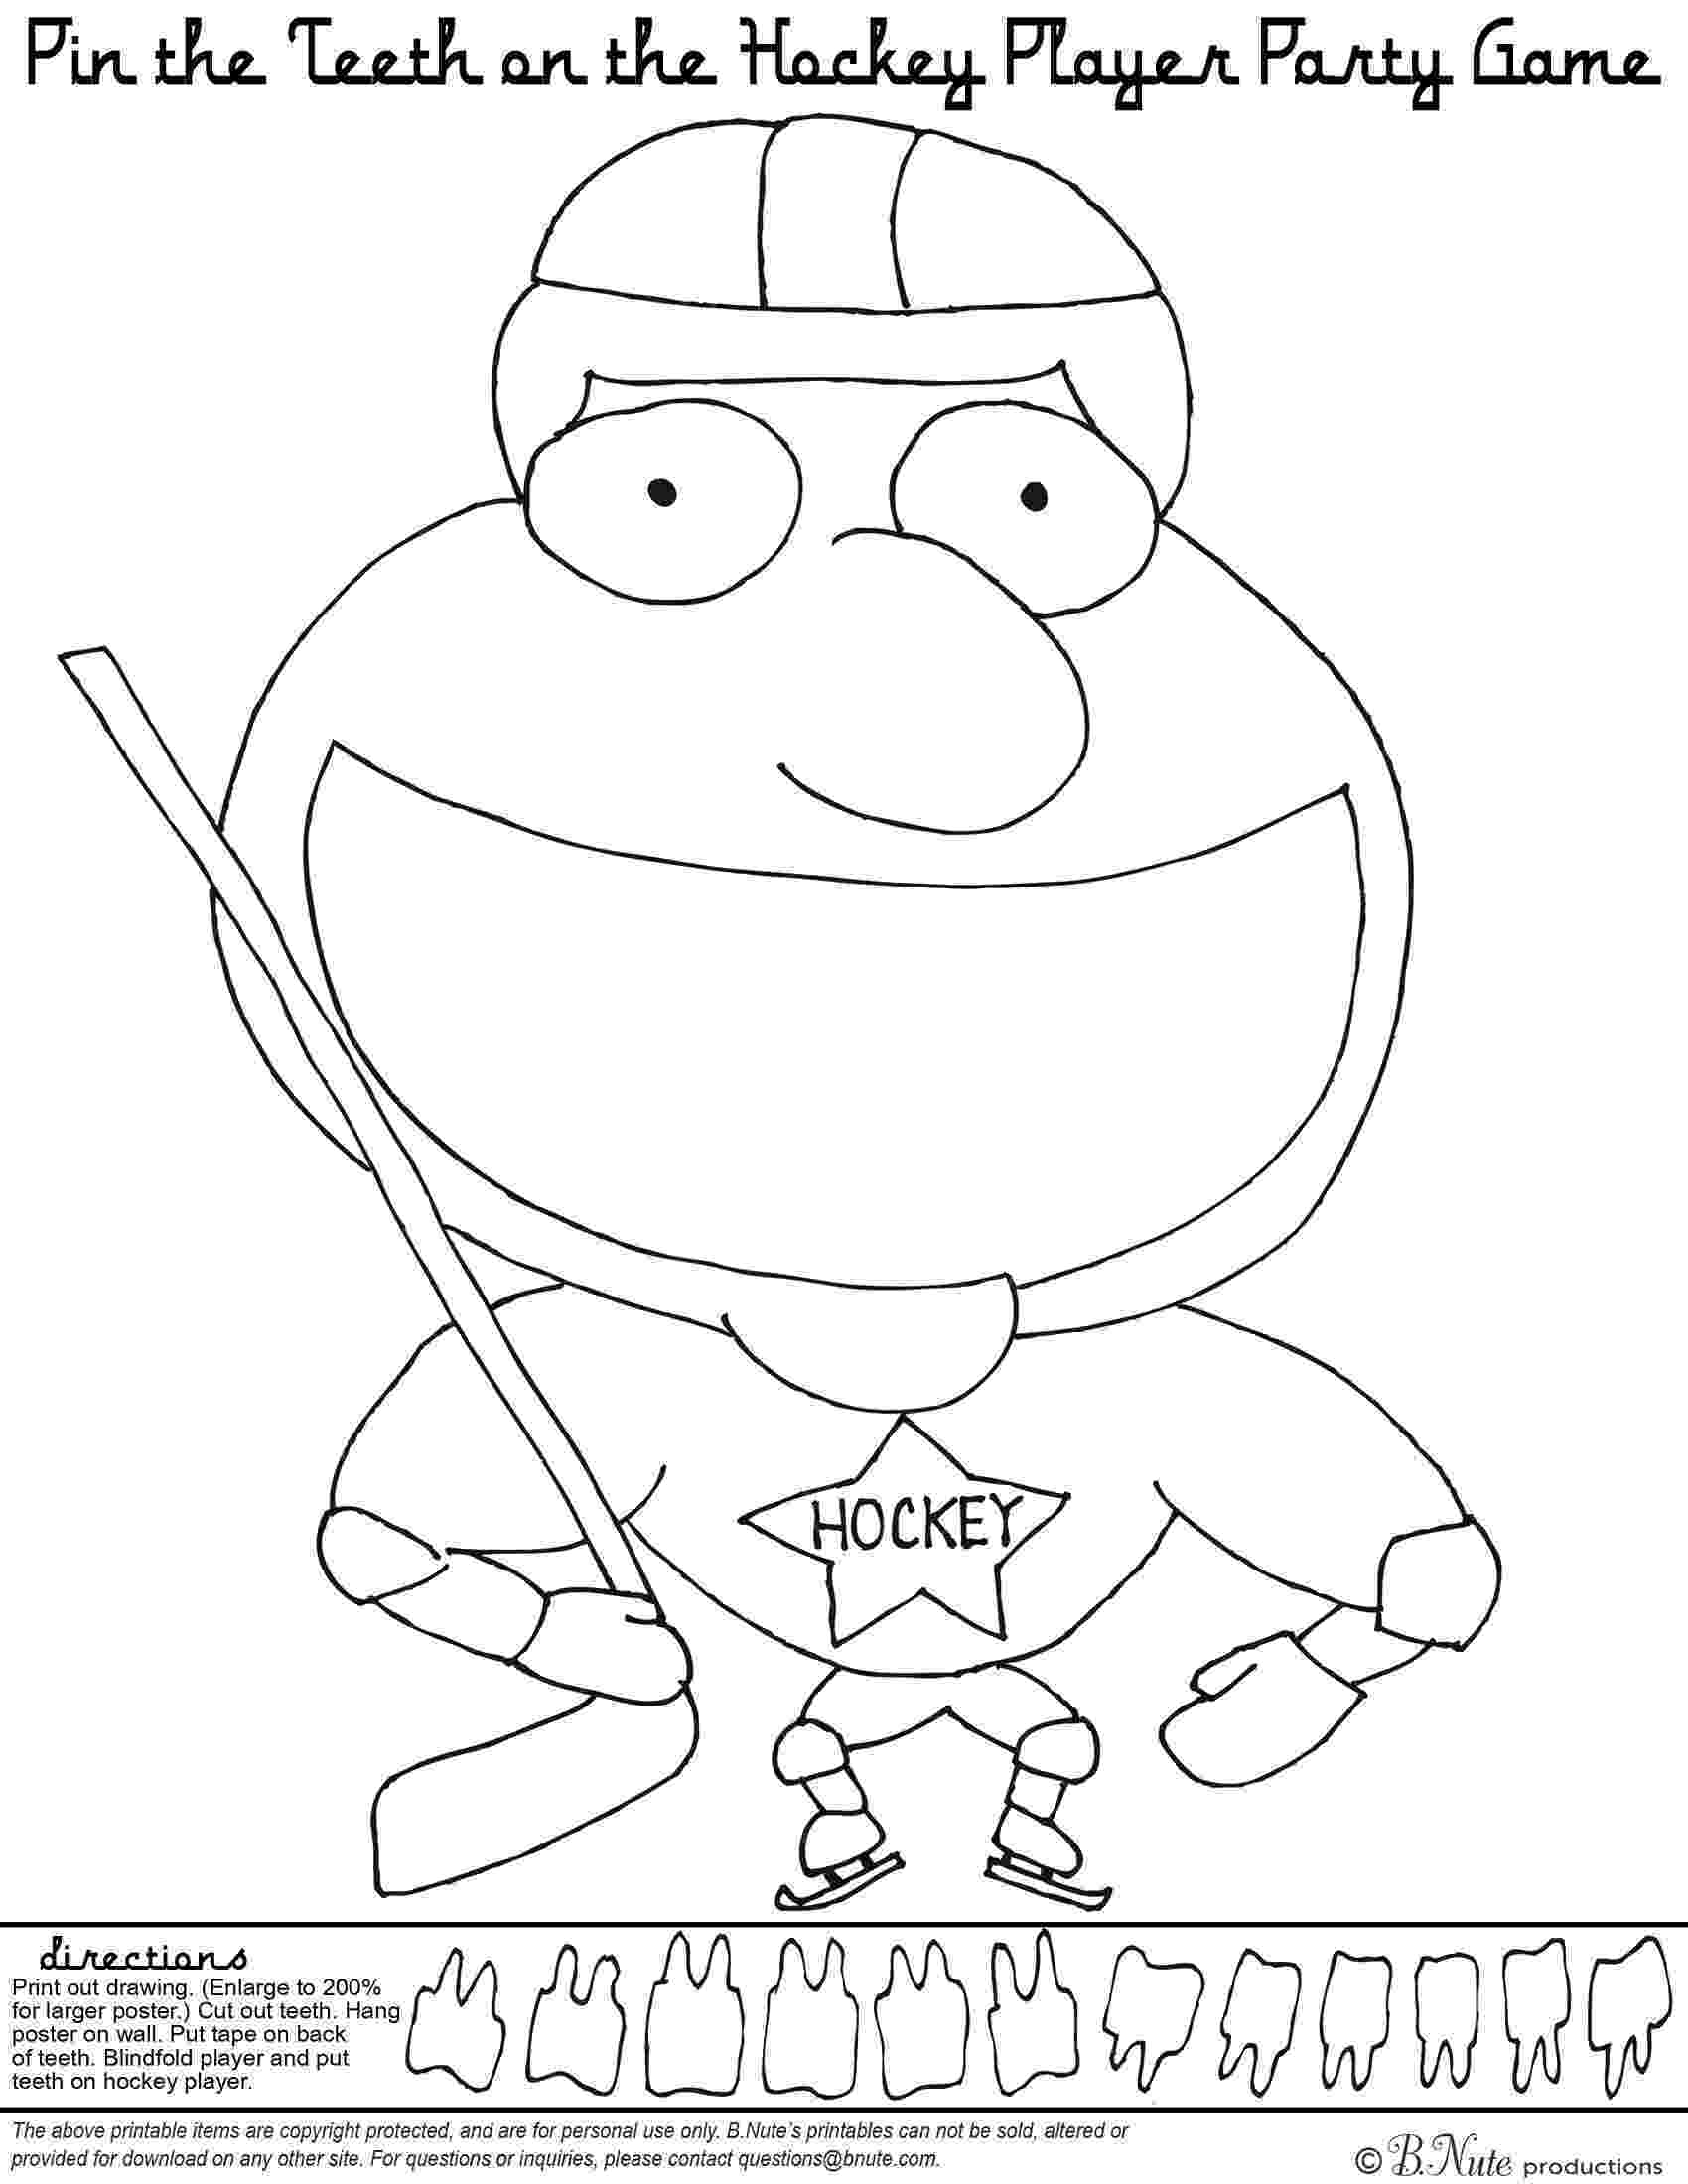 printable hockey coloring pages hockey coloring pages for kids enjoy coloring sports pages printable hockey coloring